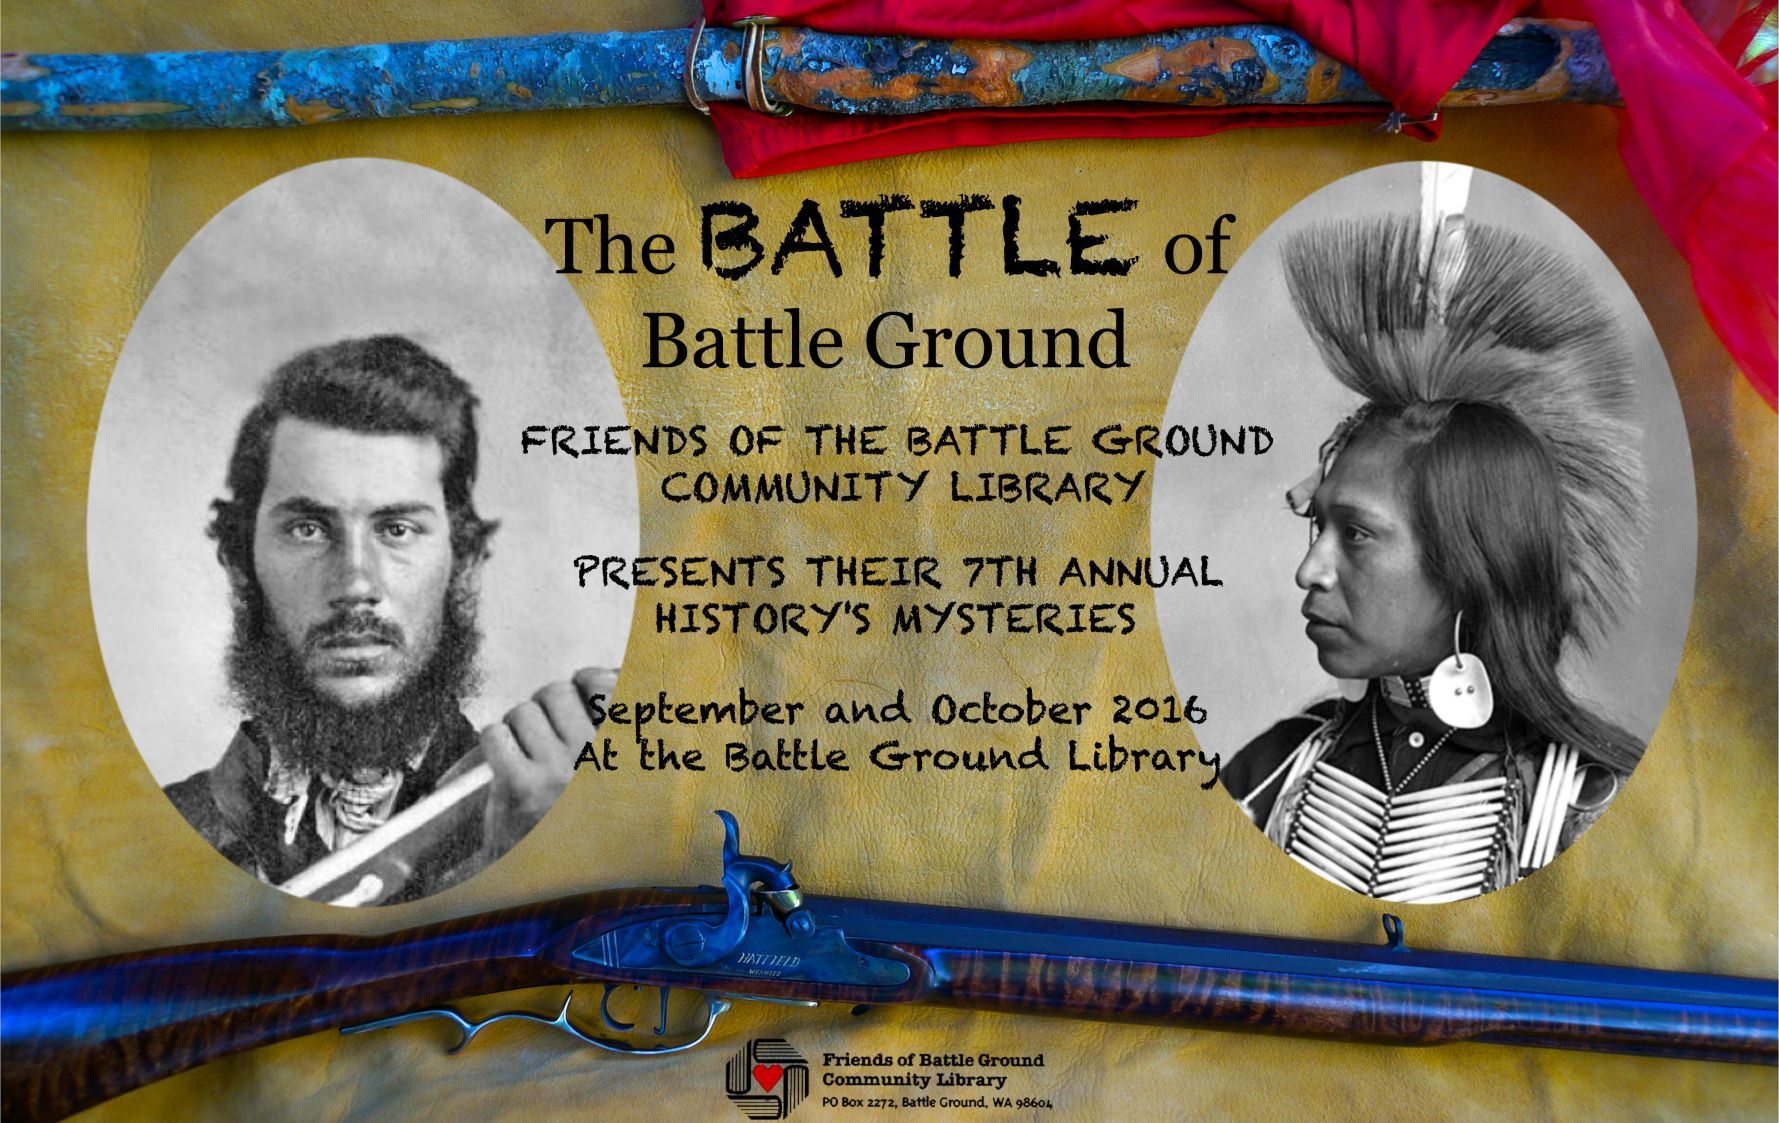 The Battle of Battle Ground Exhibit